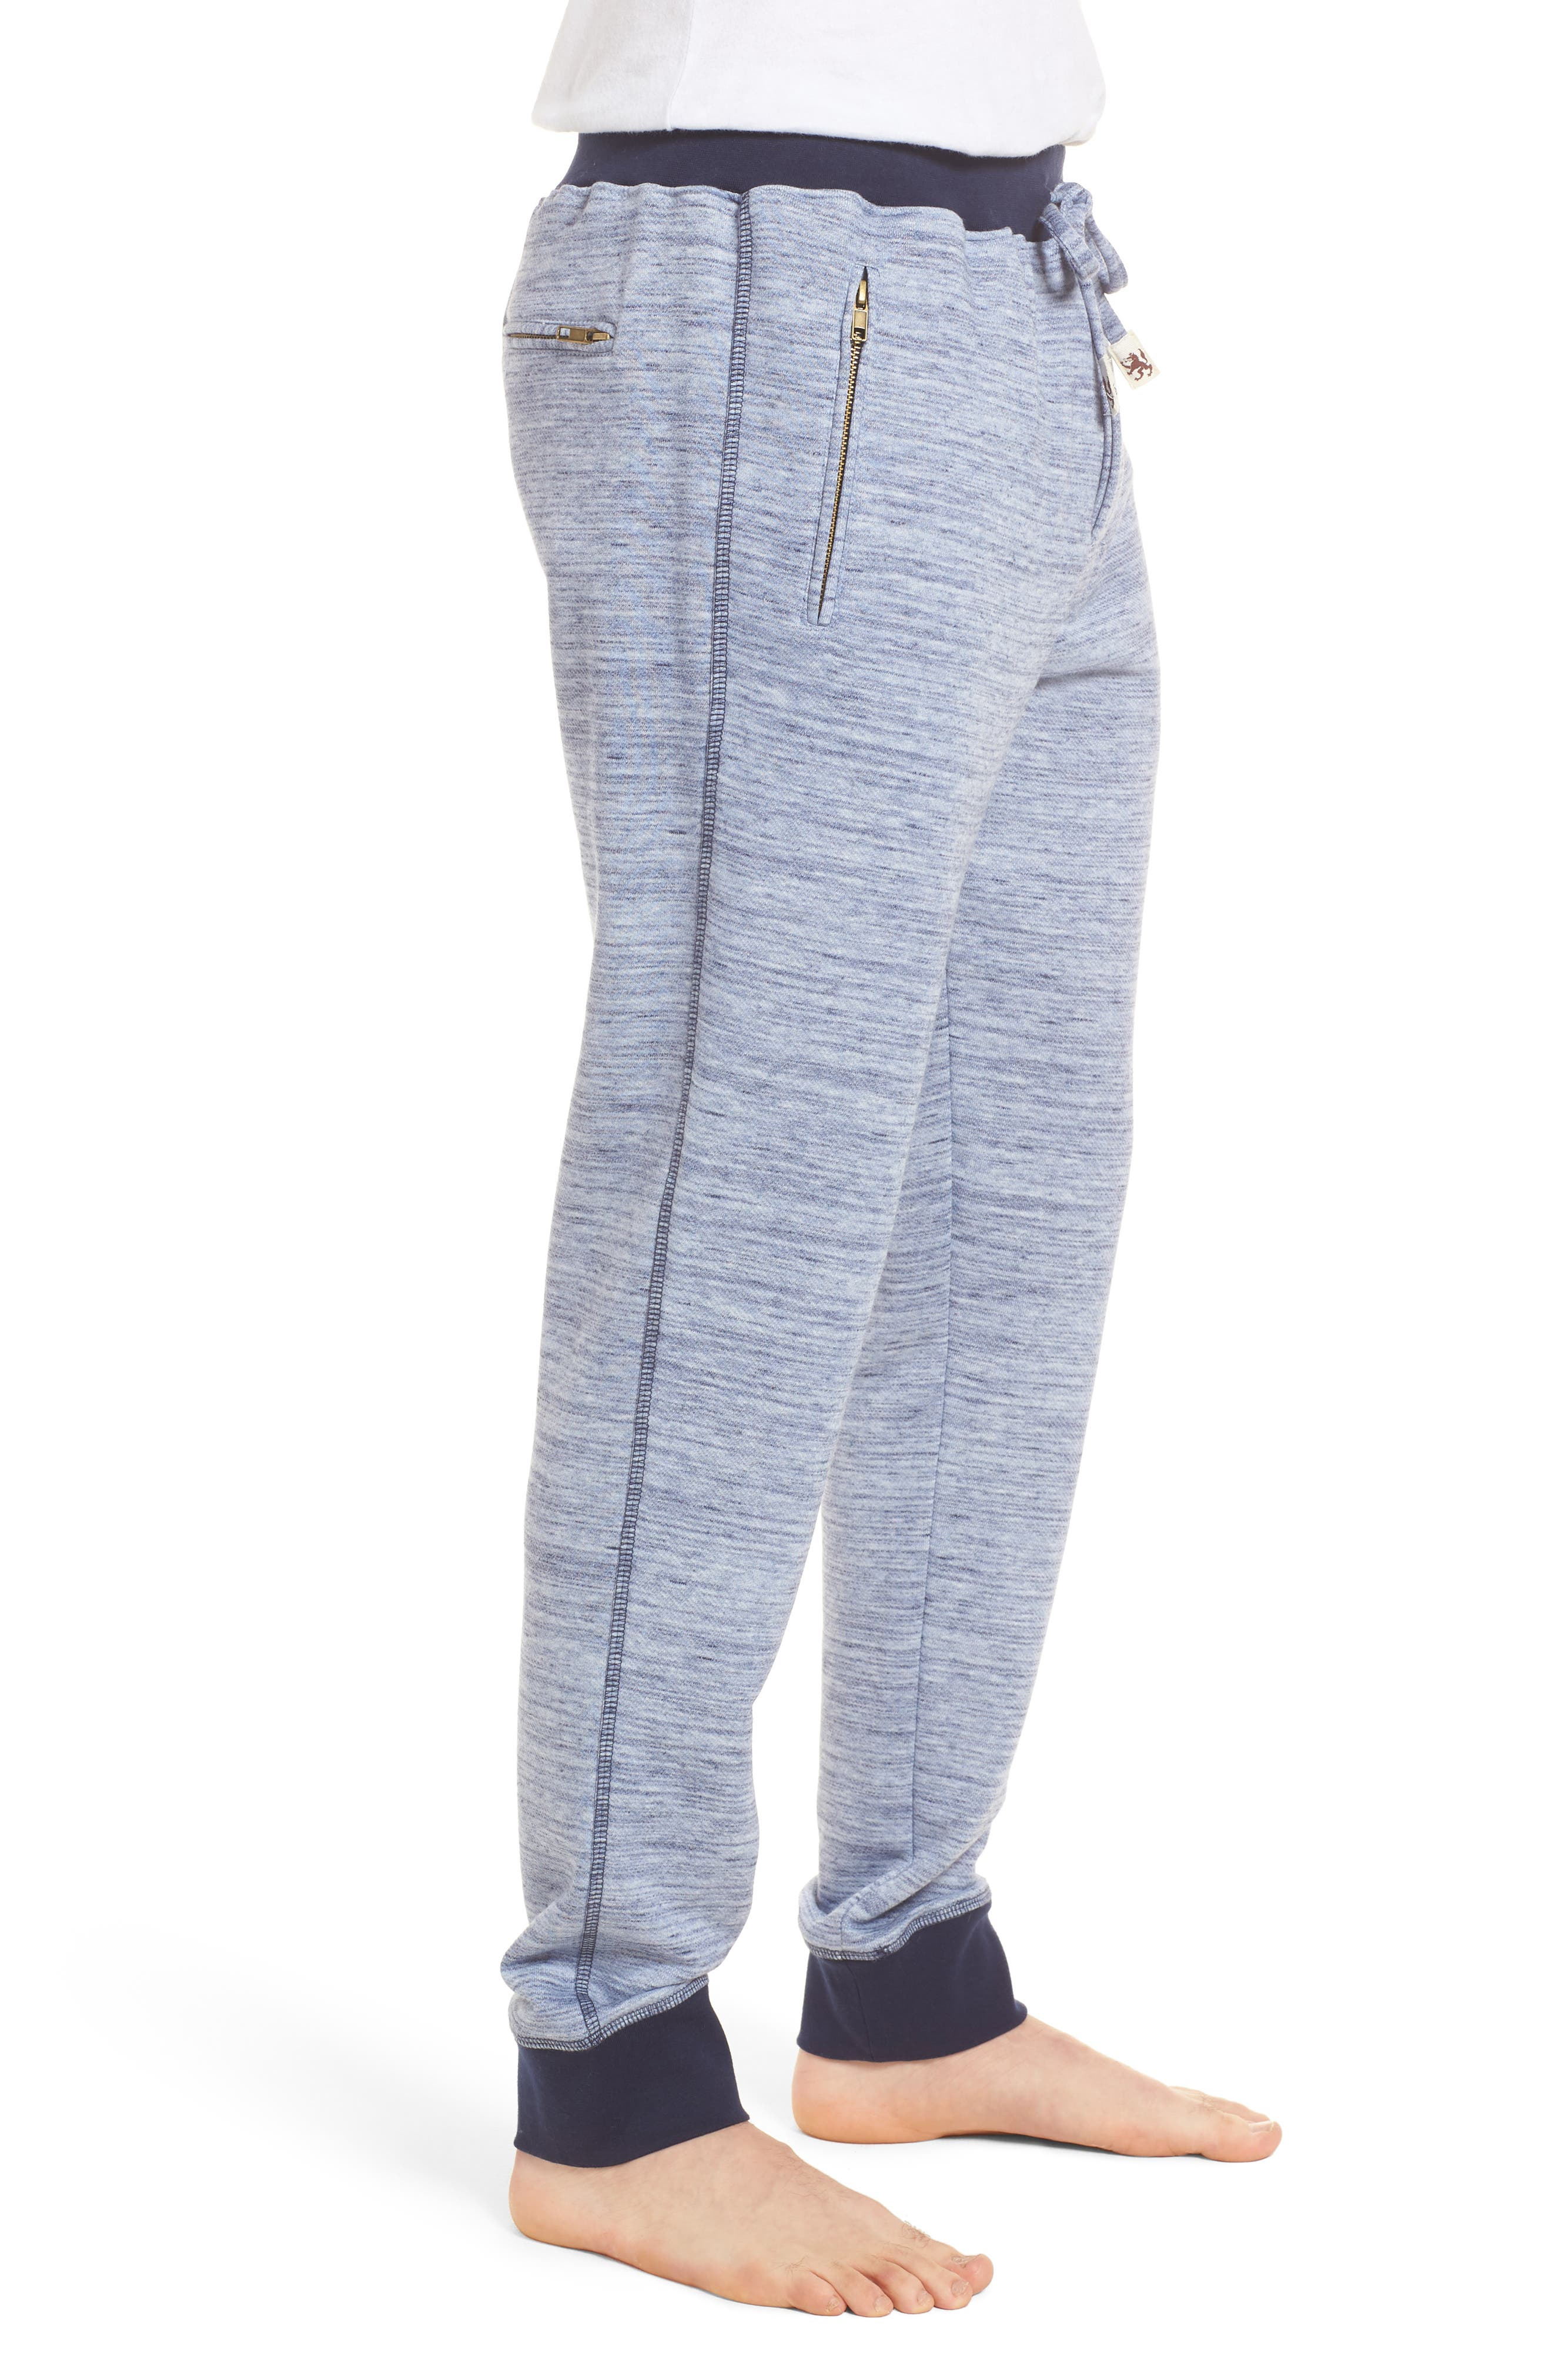 Swept In Waves Lounge Pants,                             Alternate thumbnail 3, color,                             400